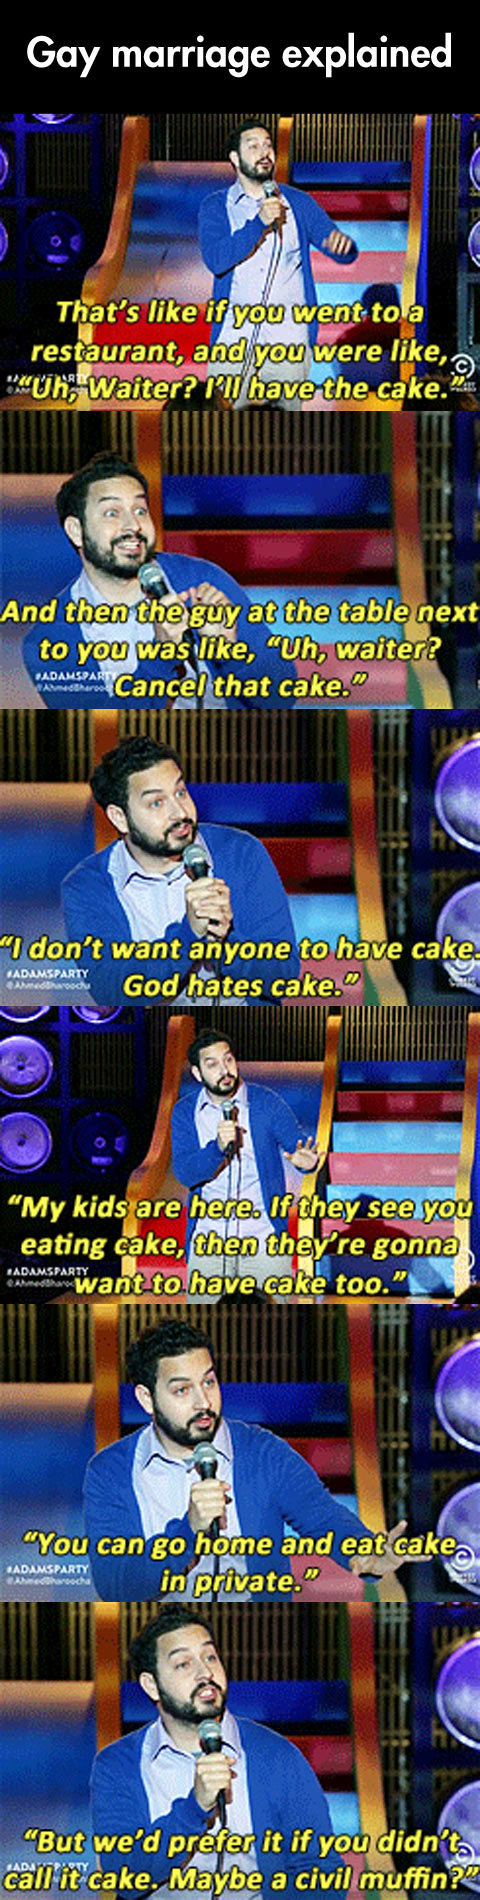 funny-gay-marriage-cake-waiter